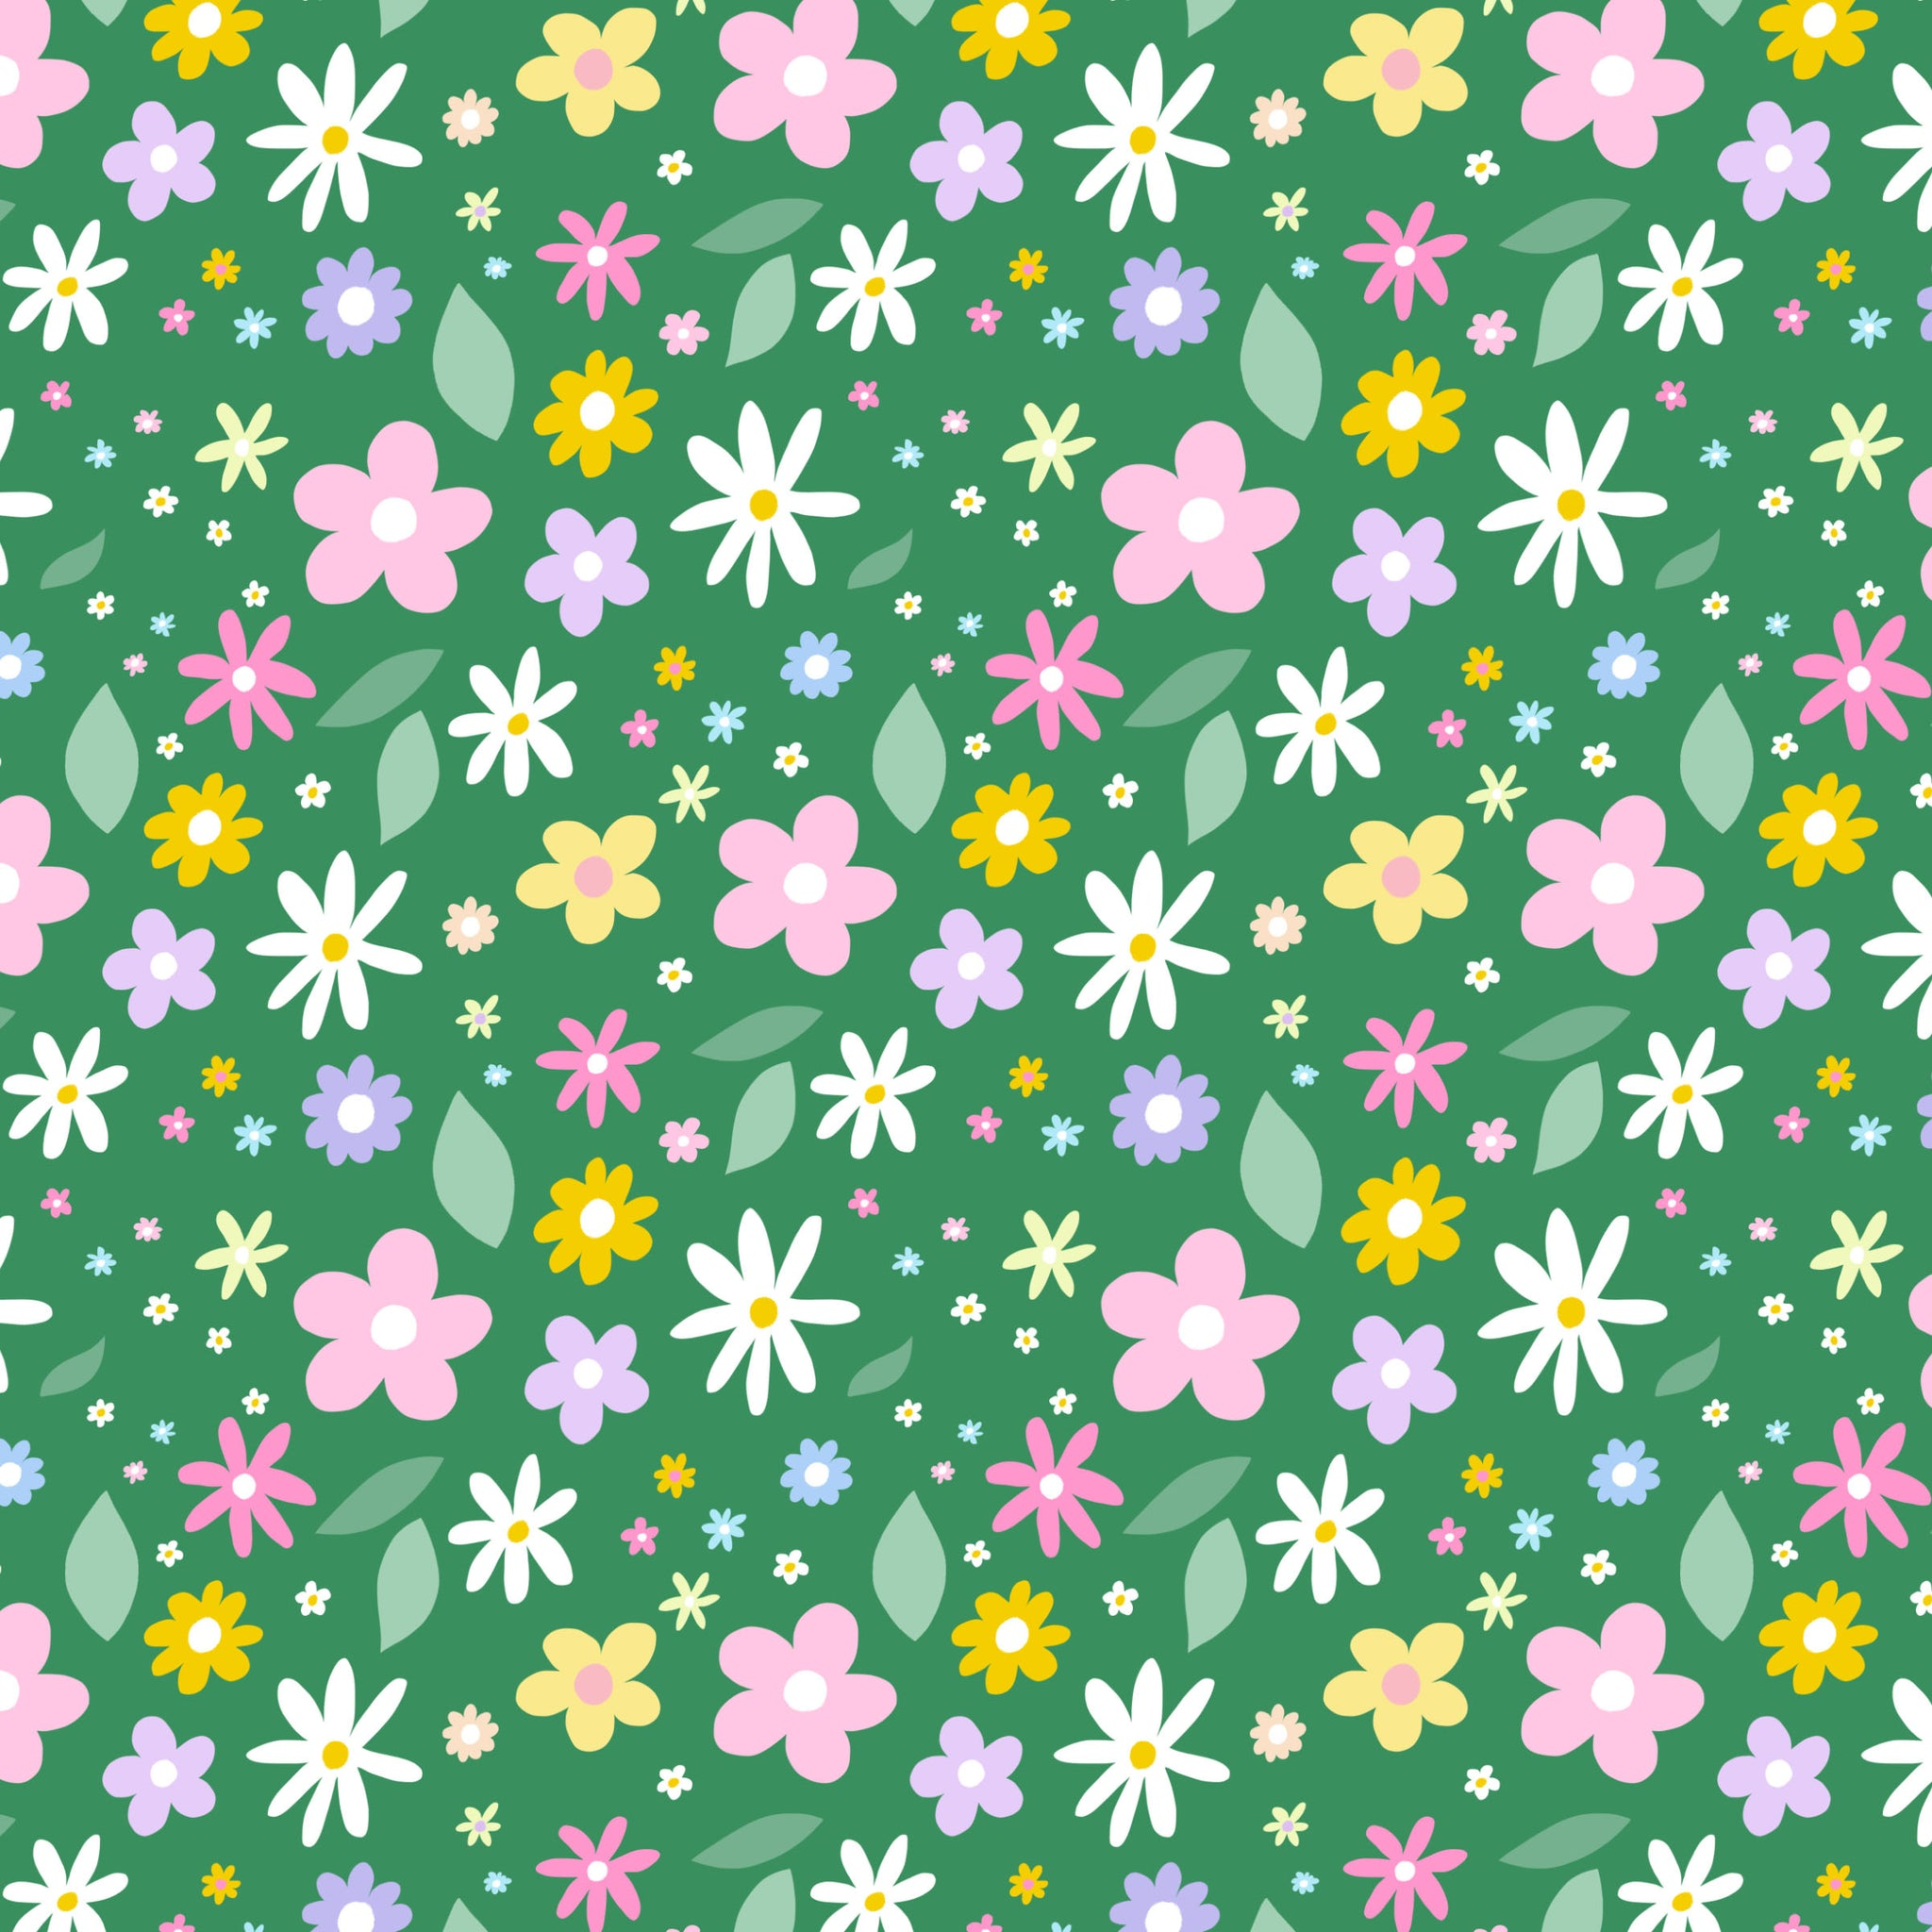 Colourful Floral Spring Pattern Free HD Tablet Wallpaper Download   Raspberry Blossom